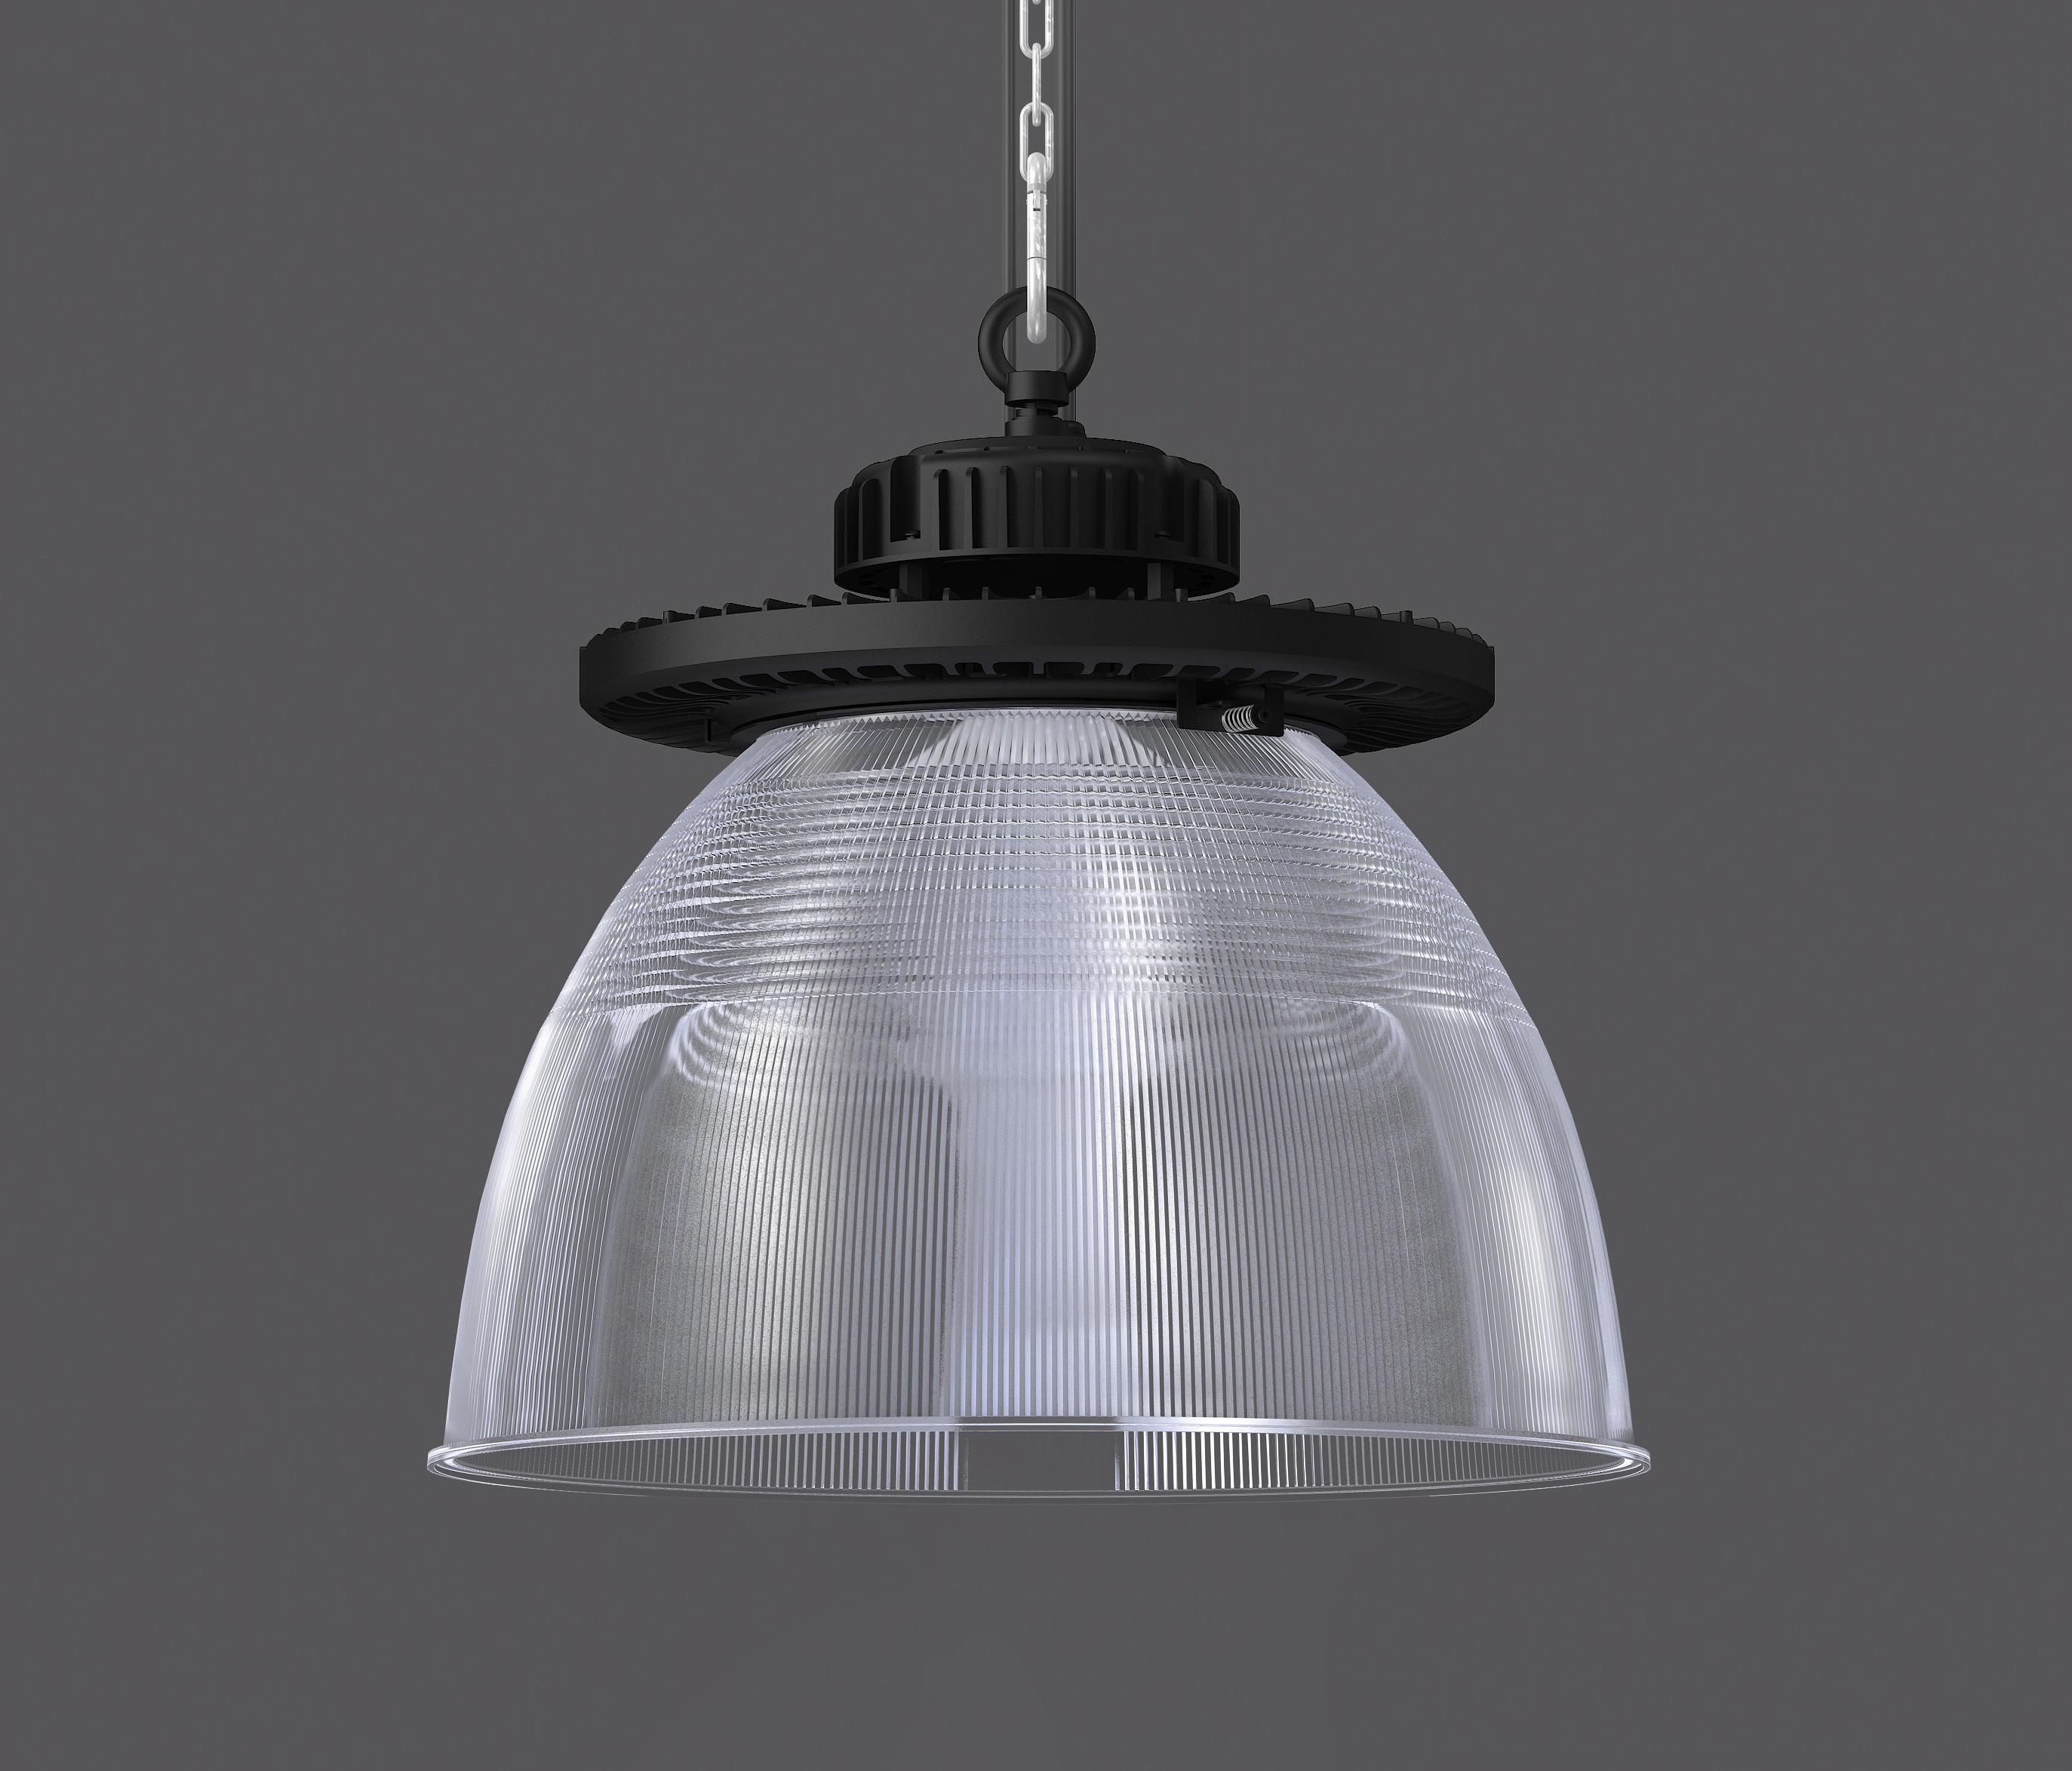 Hall Maxi Highbay Luminaires Suspended Lights